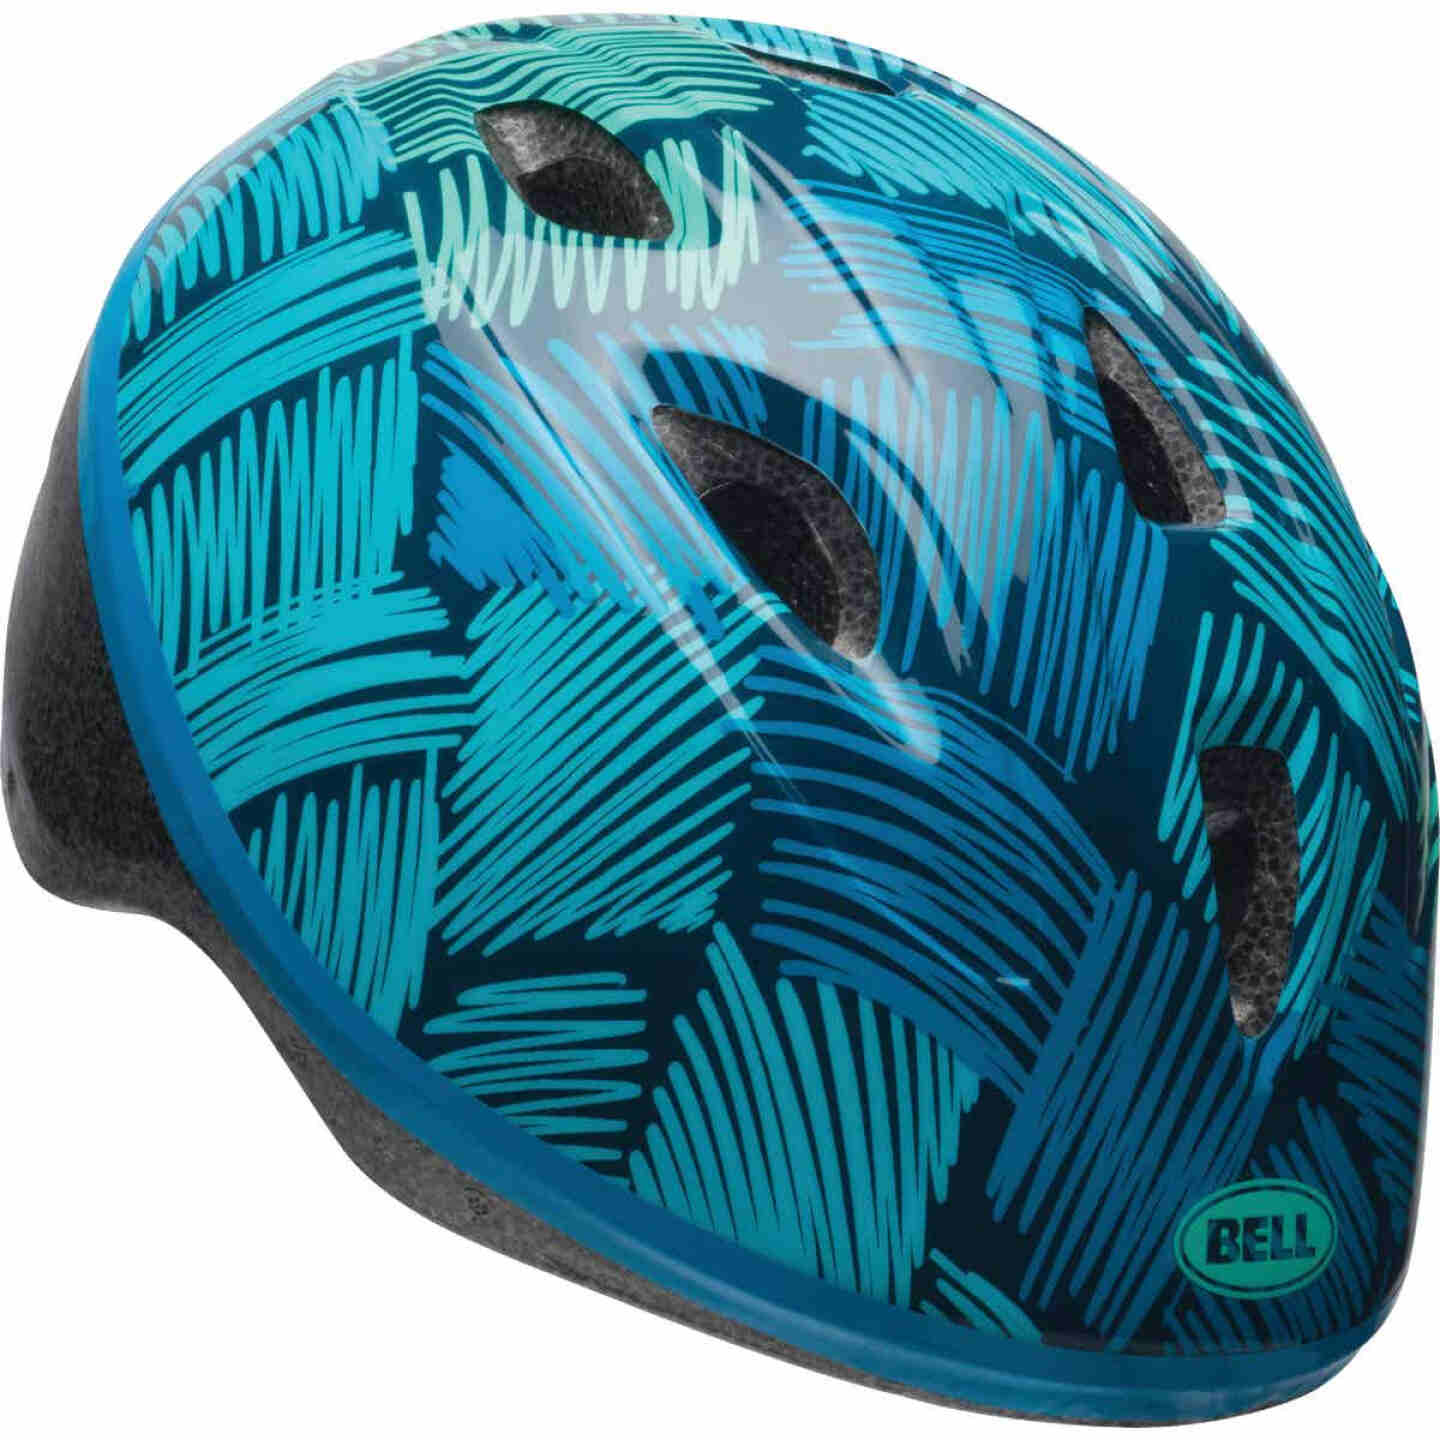 Bell Sports Boy's Toddler Bicycle Helmet Image 1